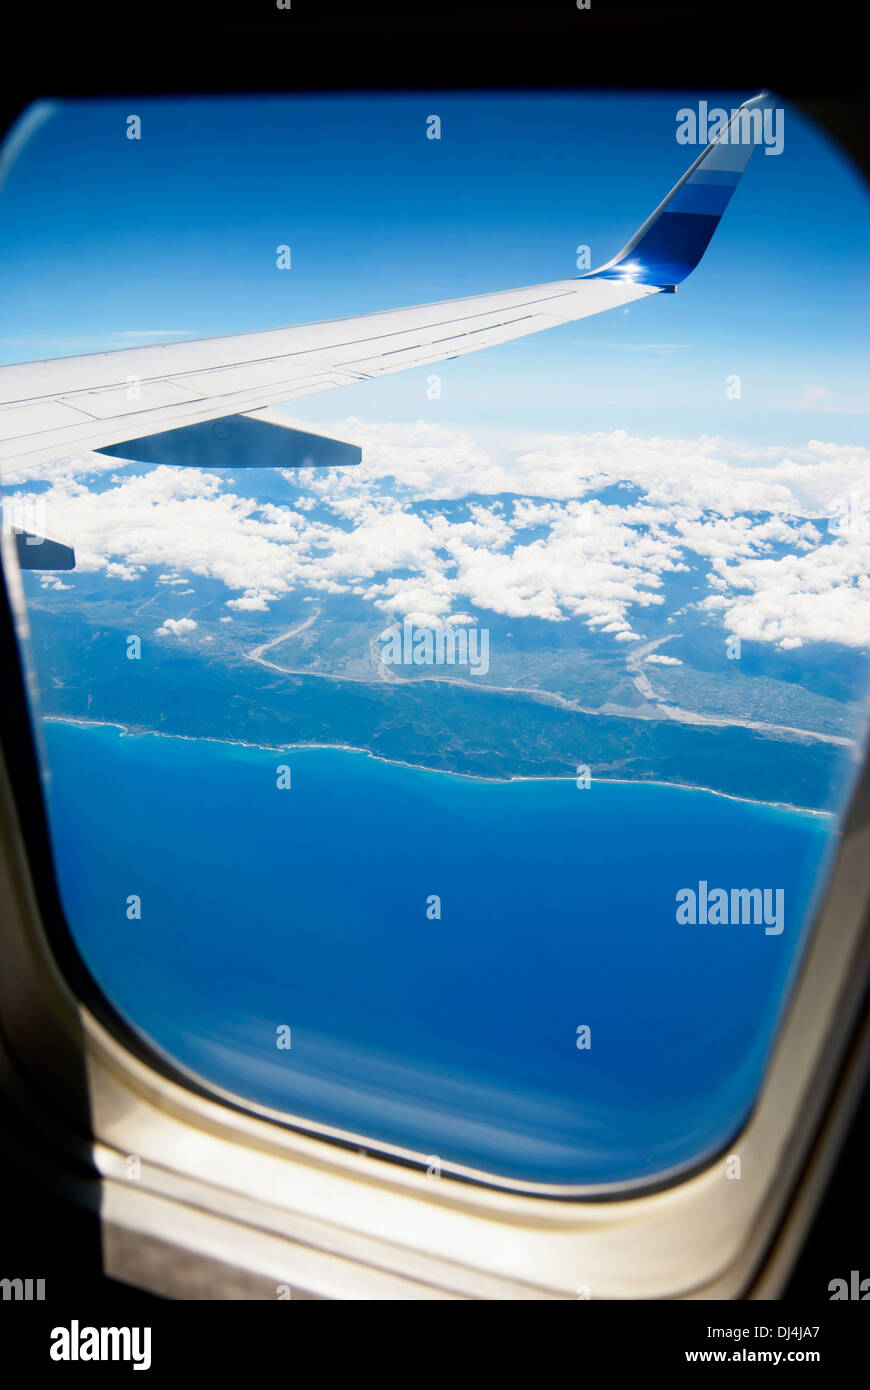 View from airpalne window. Stock Photo